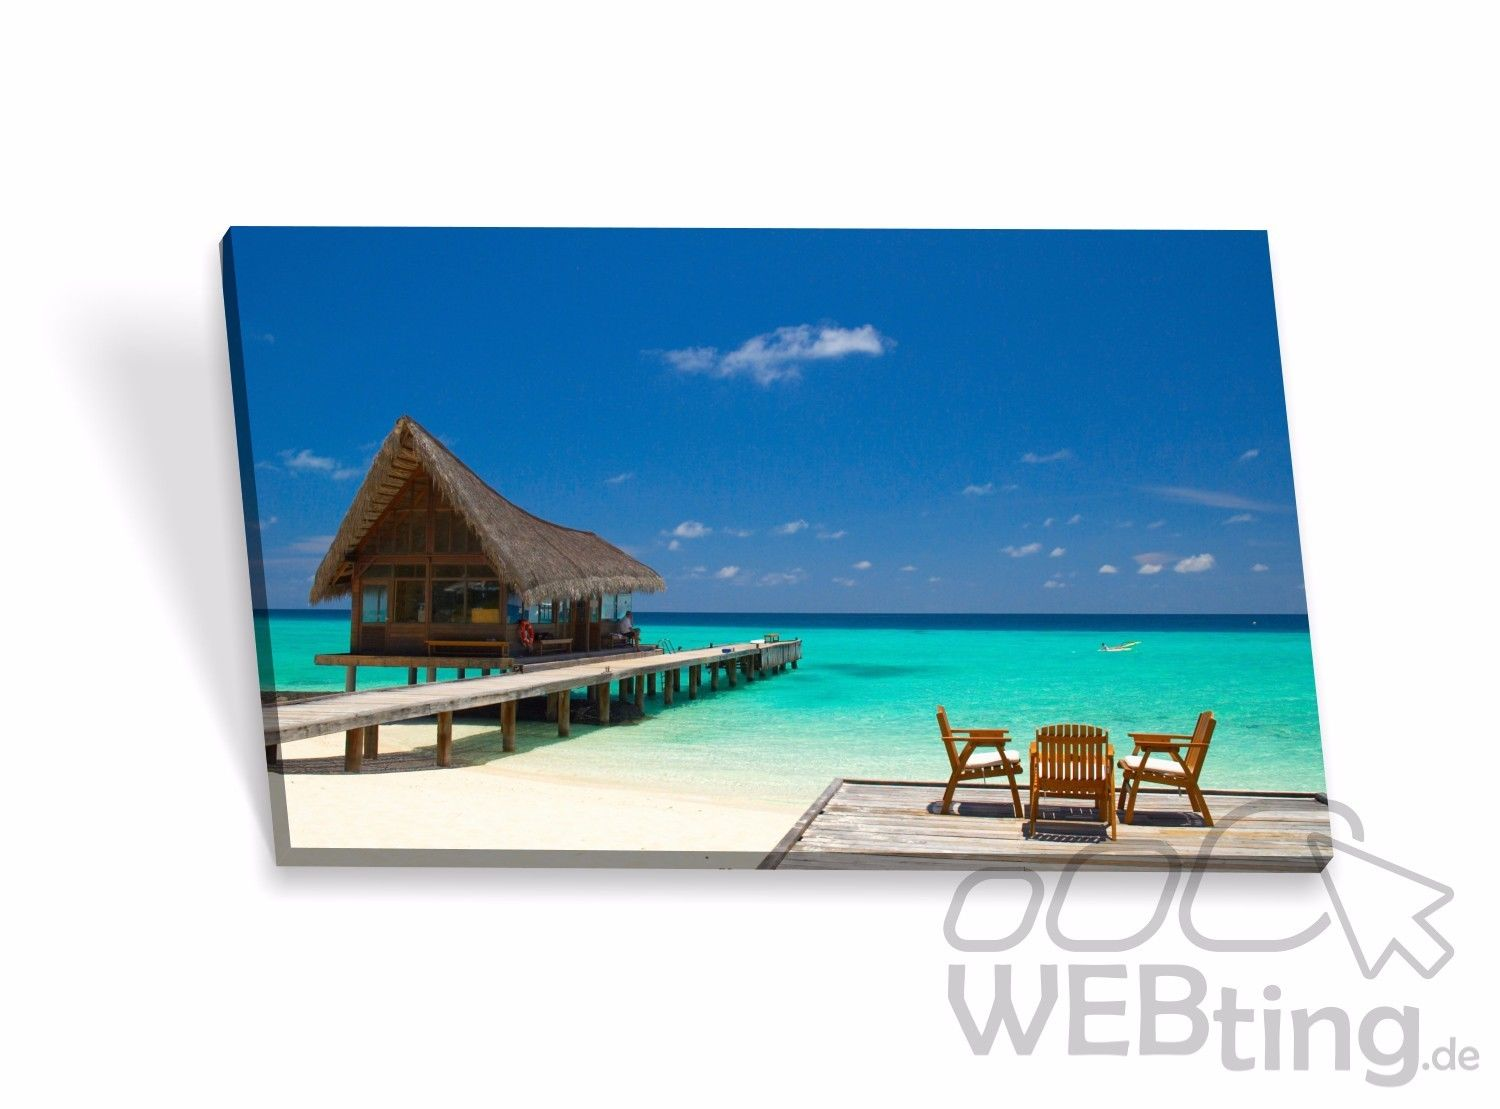 leinwandbilder strand keilrahmenbilder keilrahmen bilder poster leinwand bild. Black Bedroom Furniture Sets. Home Design Ideas